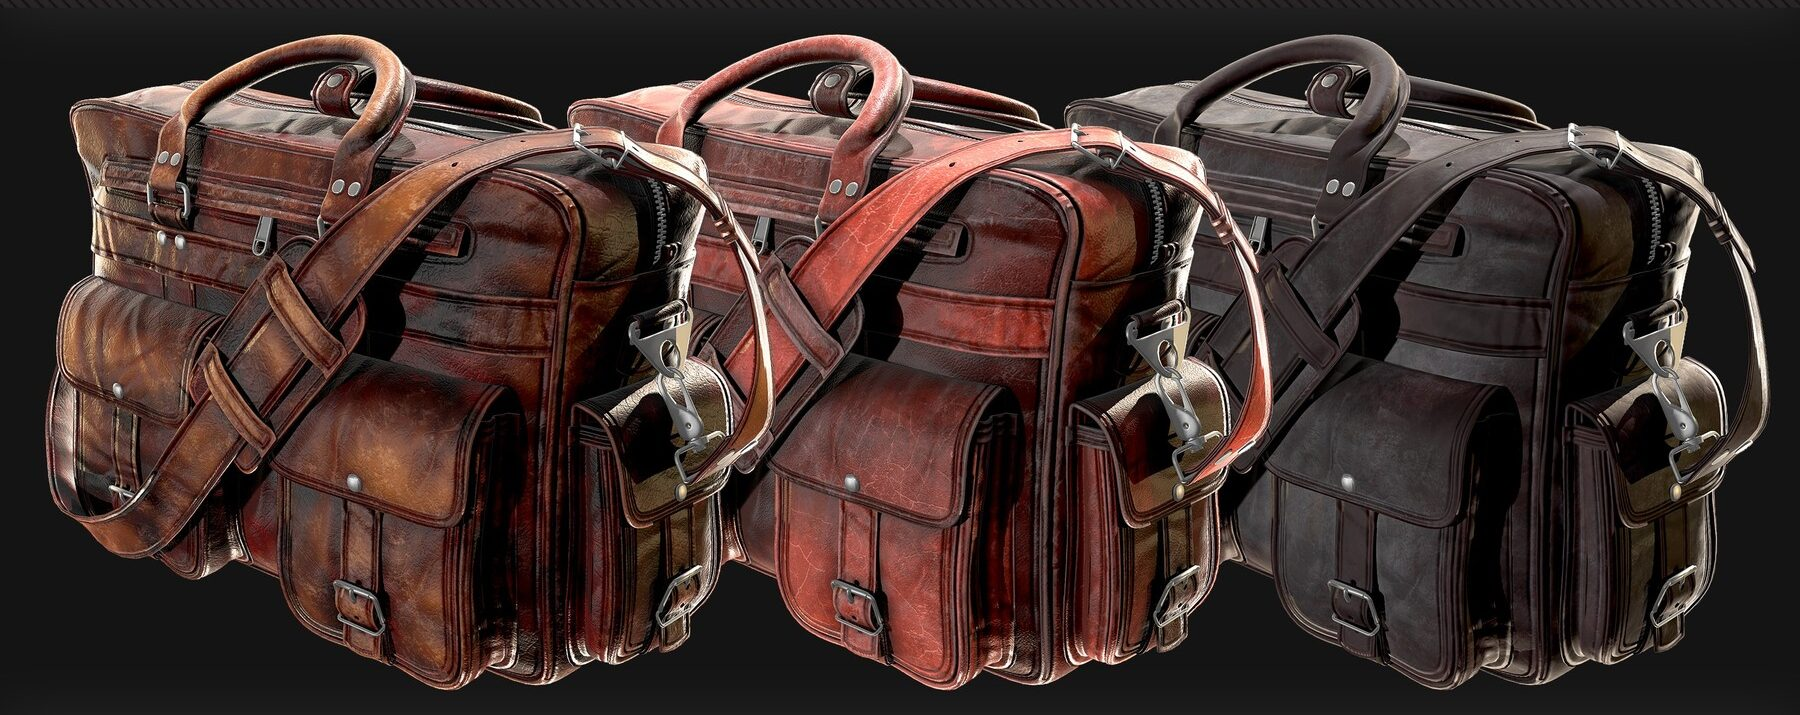 Three 3D renders of leather bags